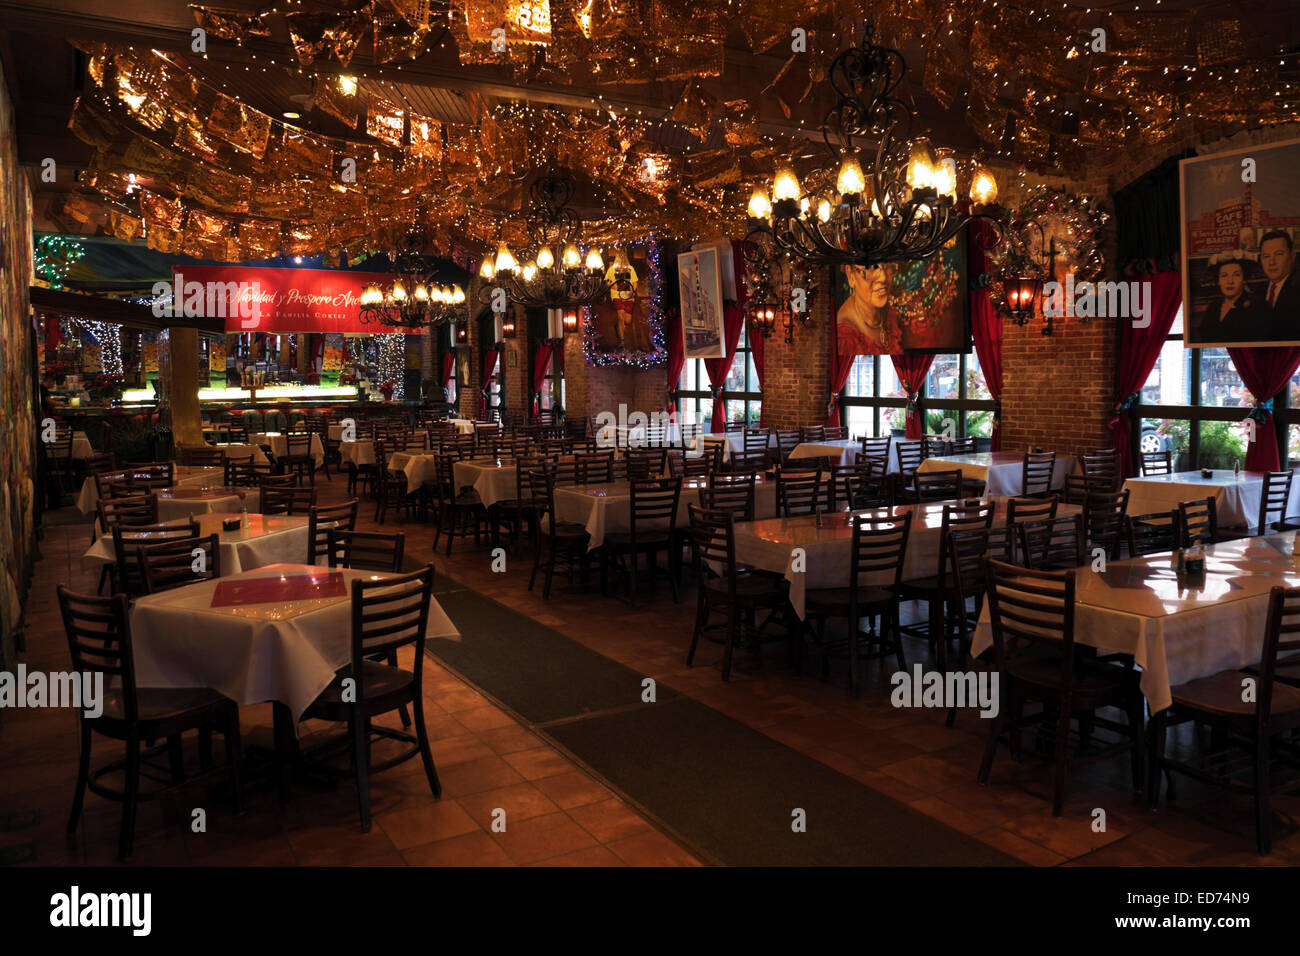 Early Morning Interior Of The Front Dining Room Mi Tierra Restaurant At Market Square In San Antonio Texas